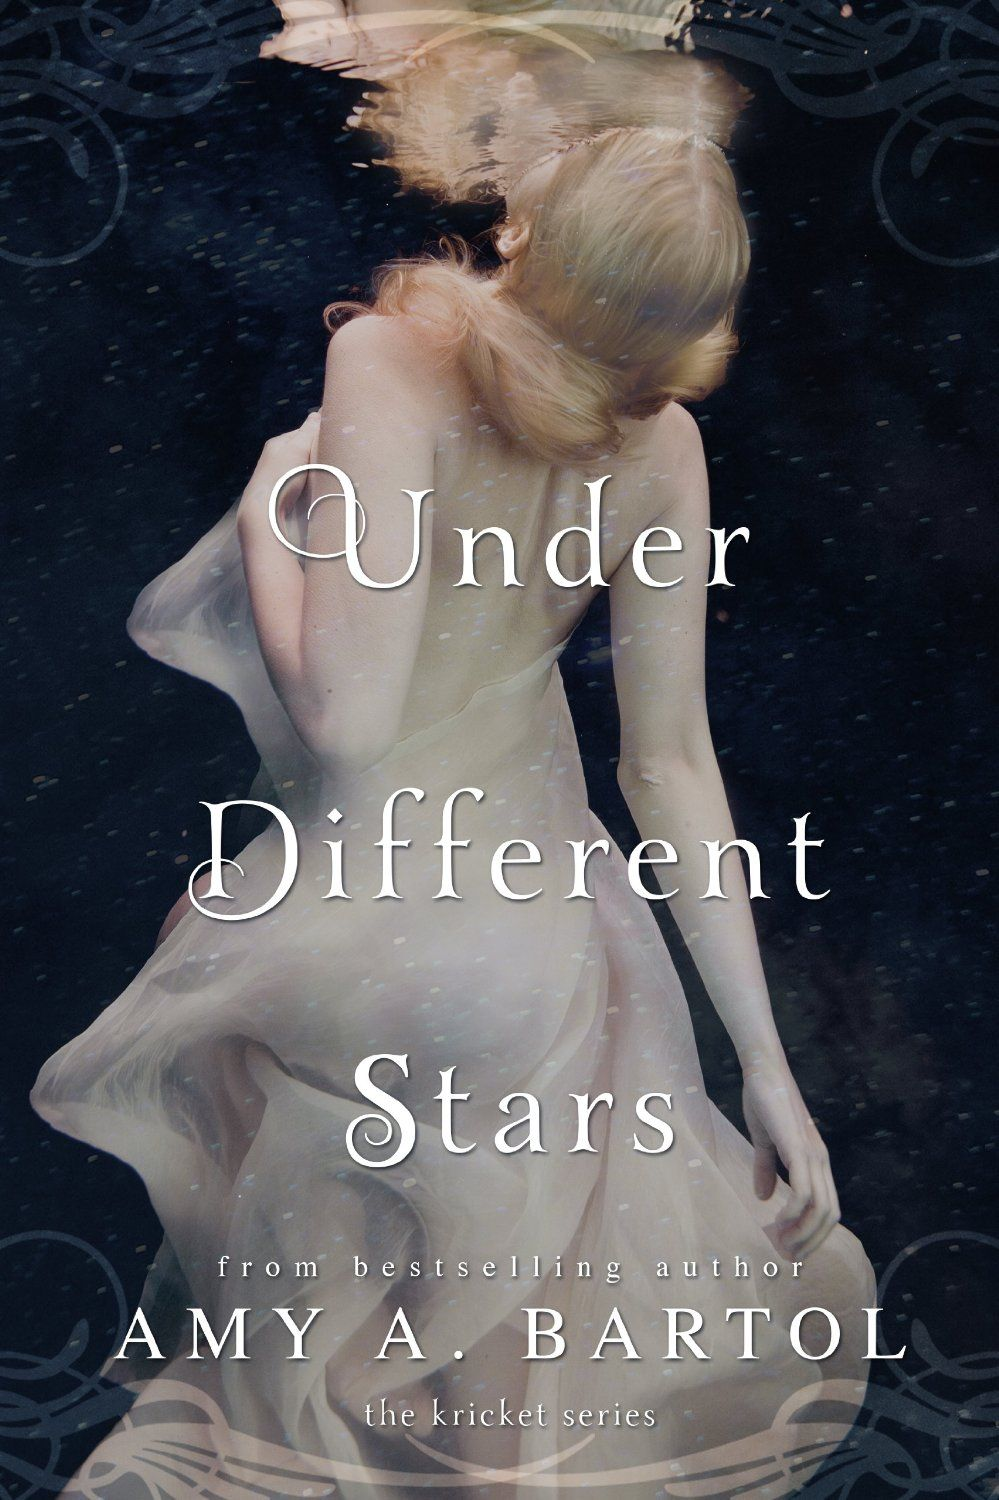 Under Different Stars (The Kricket Series Book 1) by Amy A. Bartol | 47North | December 9, 2014